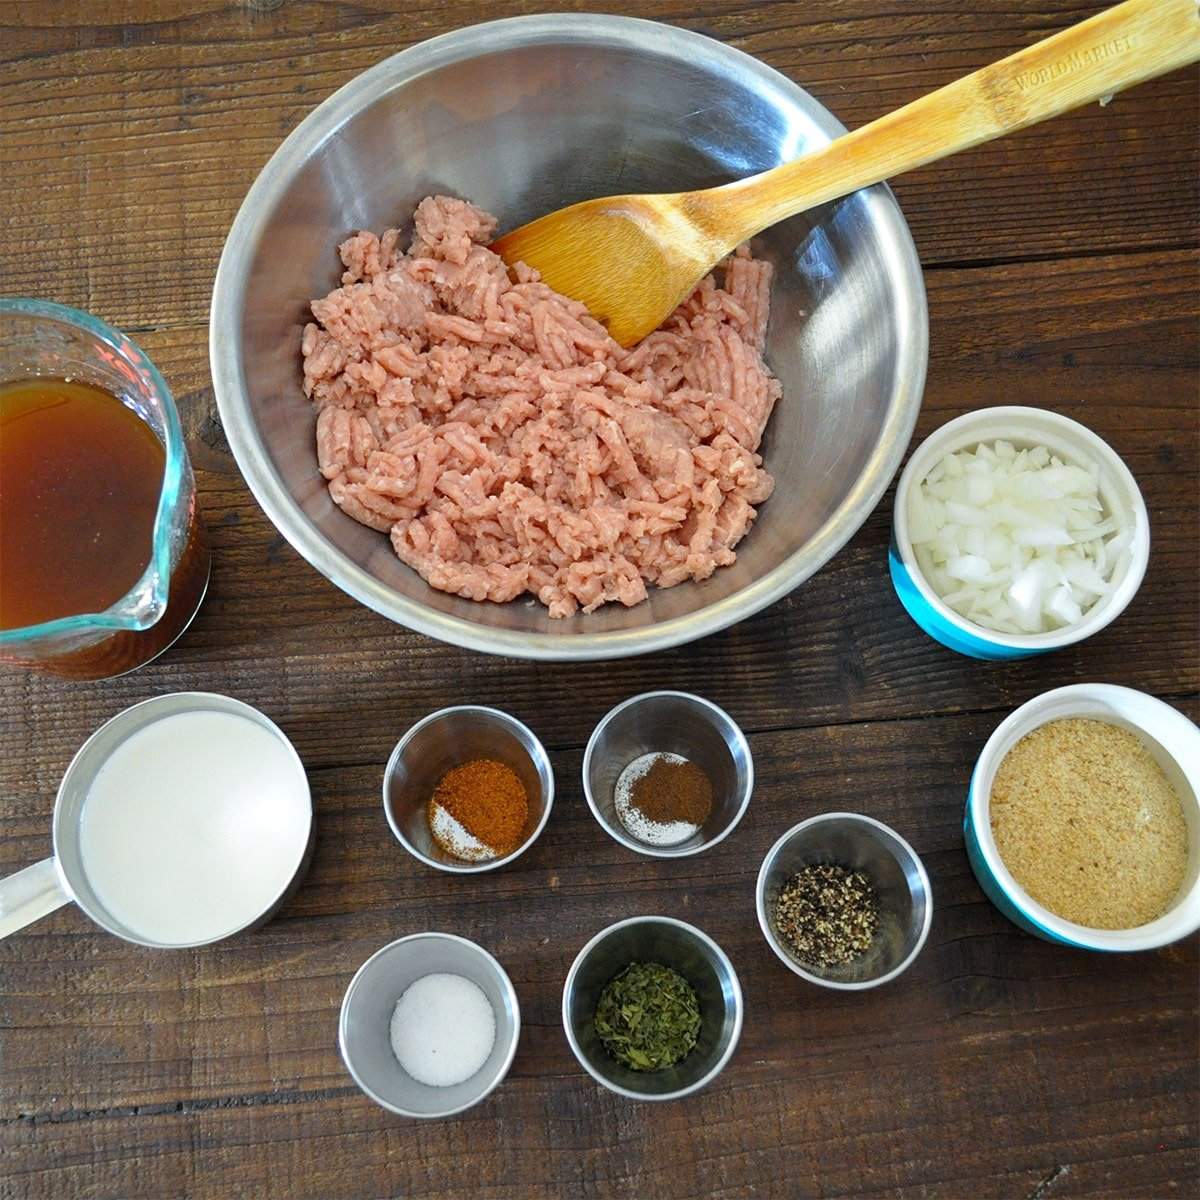 raw ground turkey, broth, cream, onion, and spices for meatballs